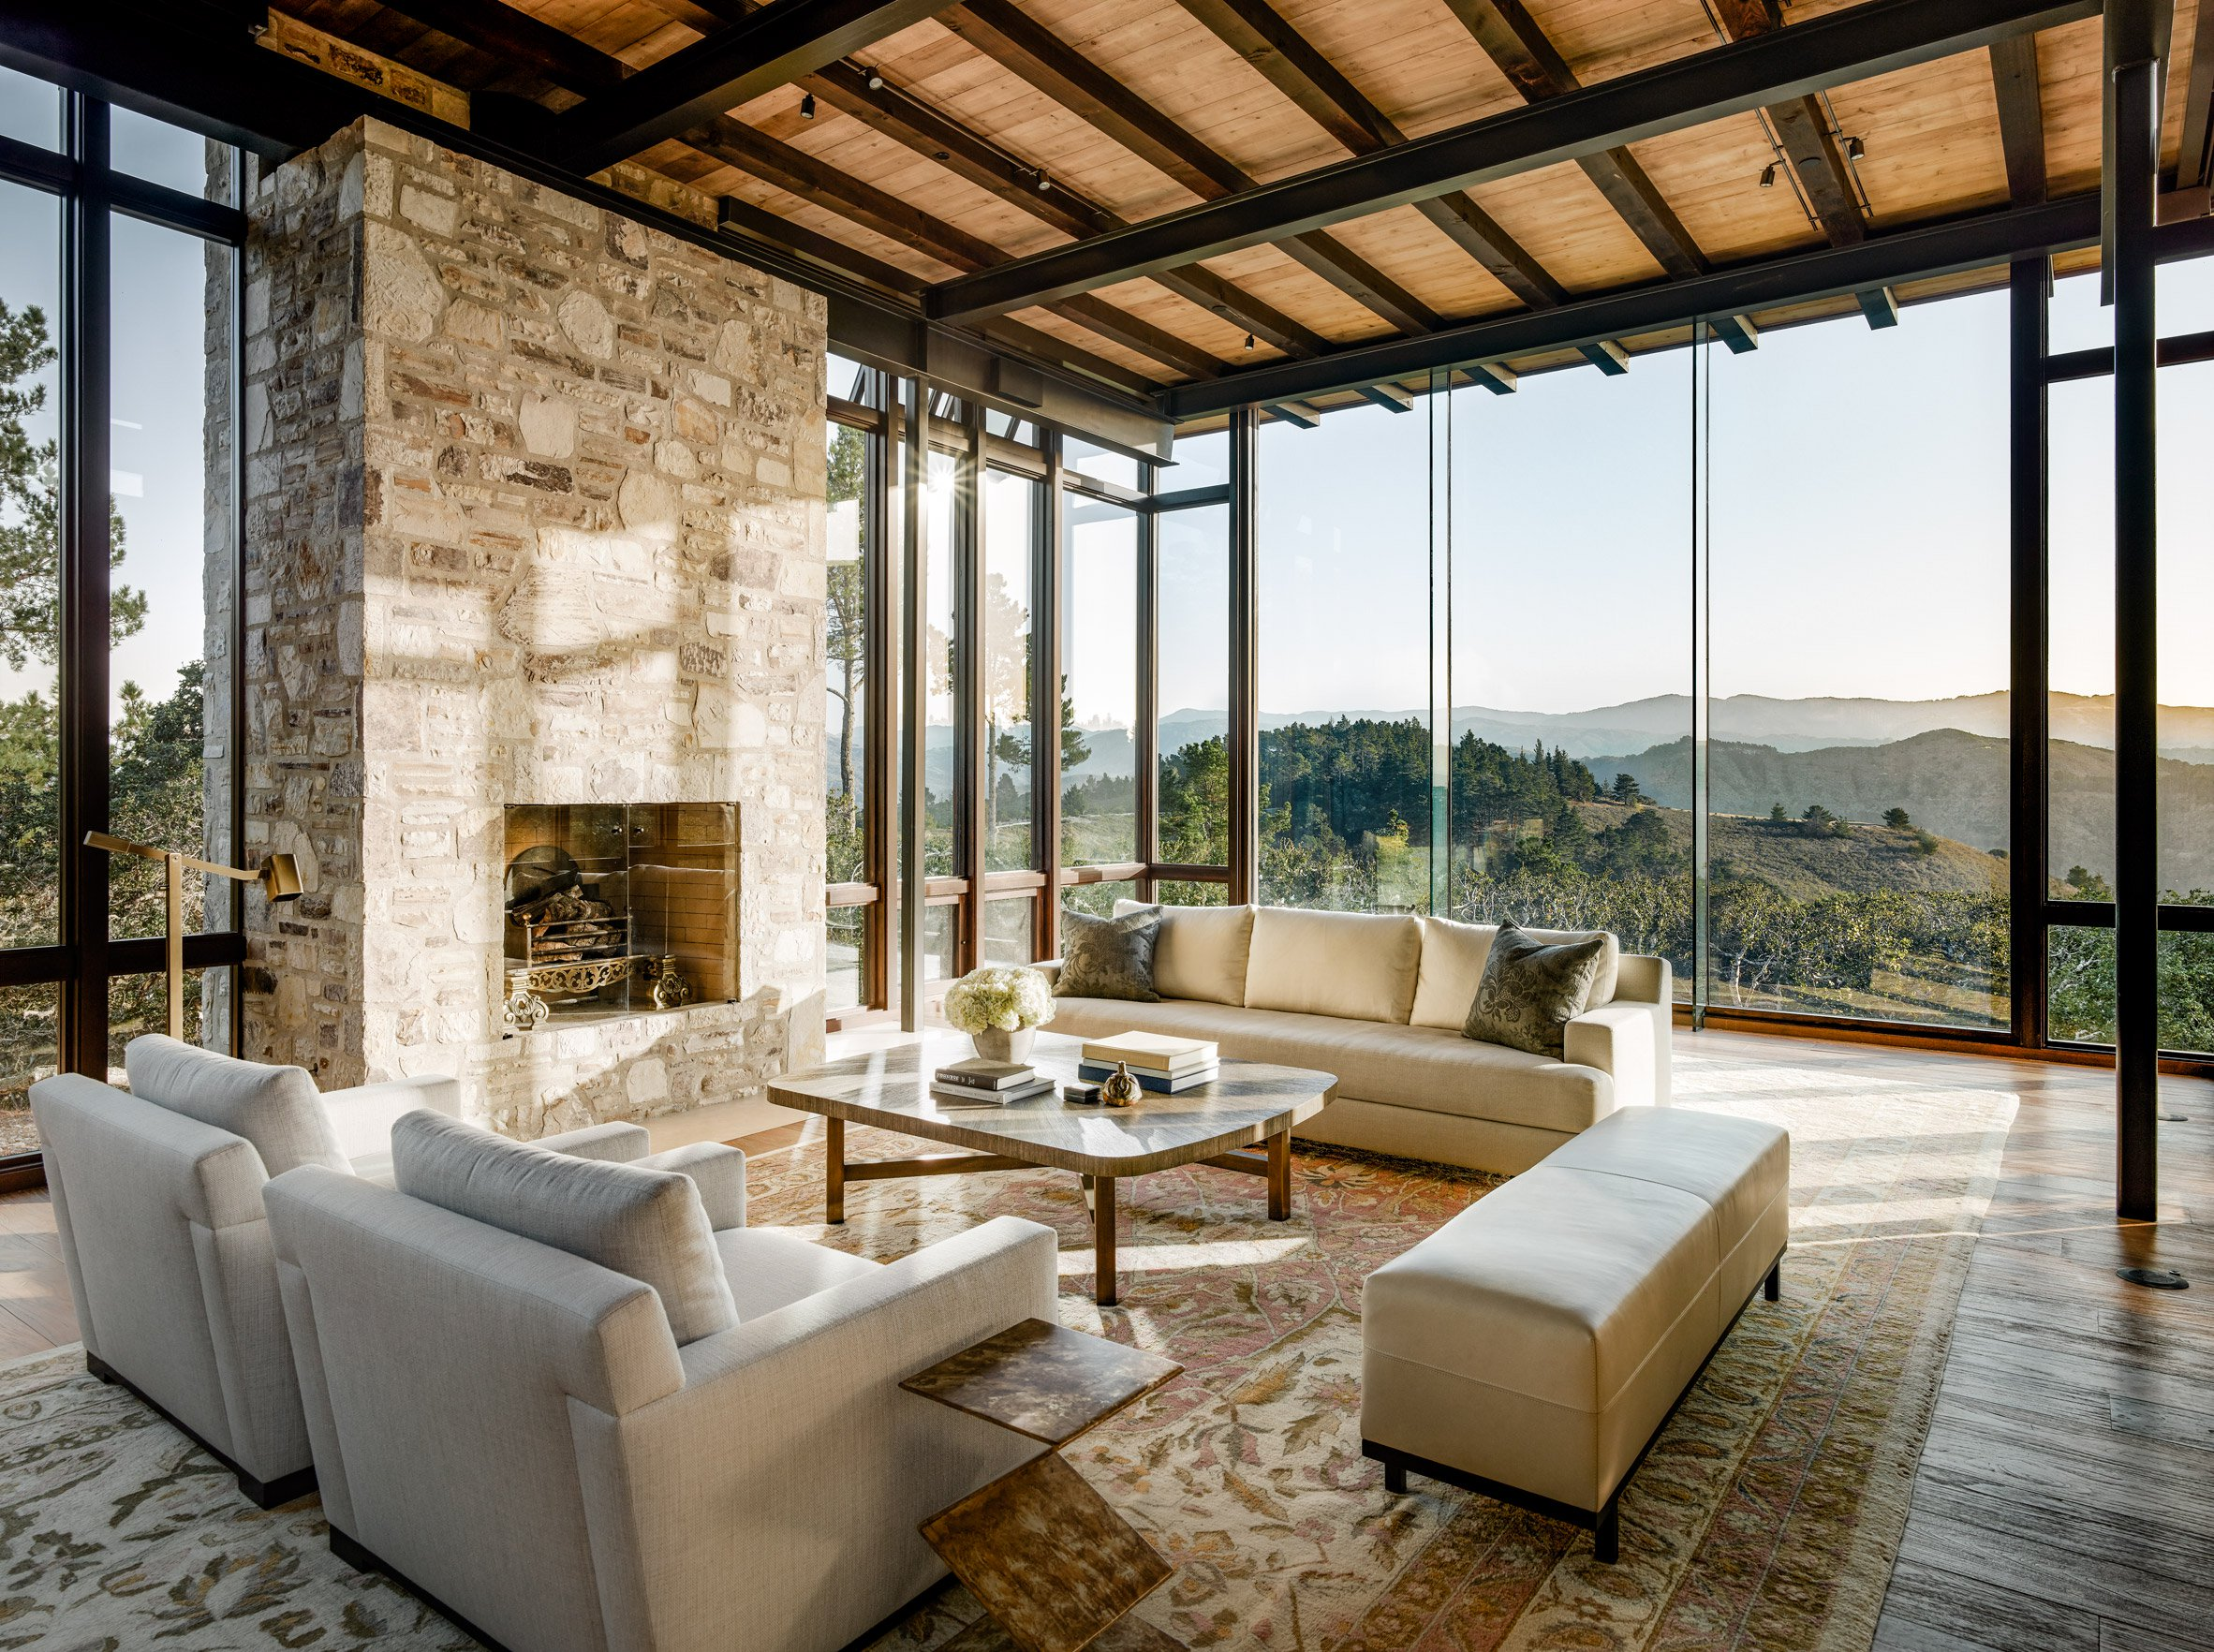 A large stone fireplace with panoramic views on either side gives the living room a cozy look